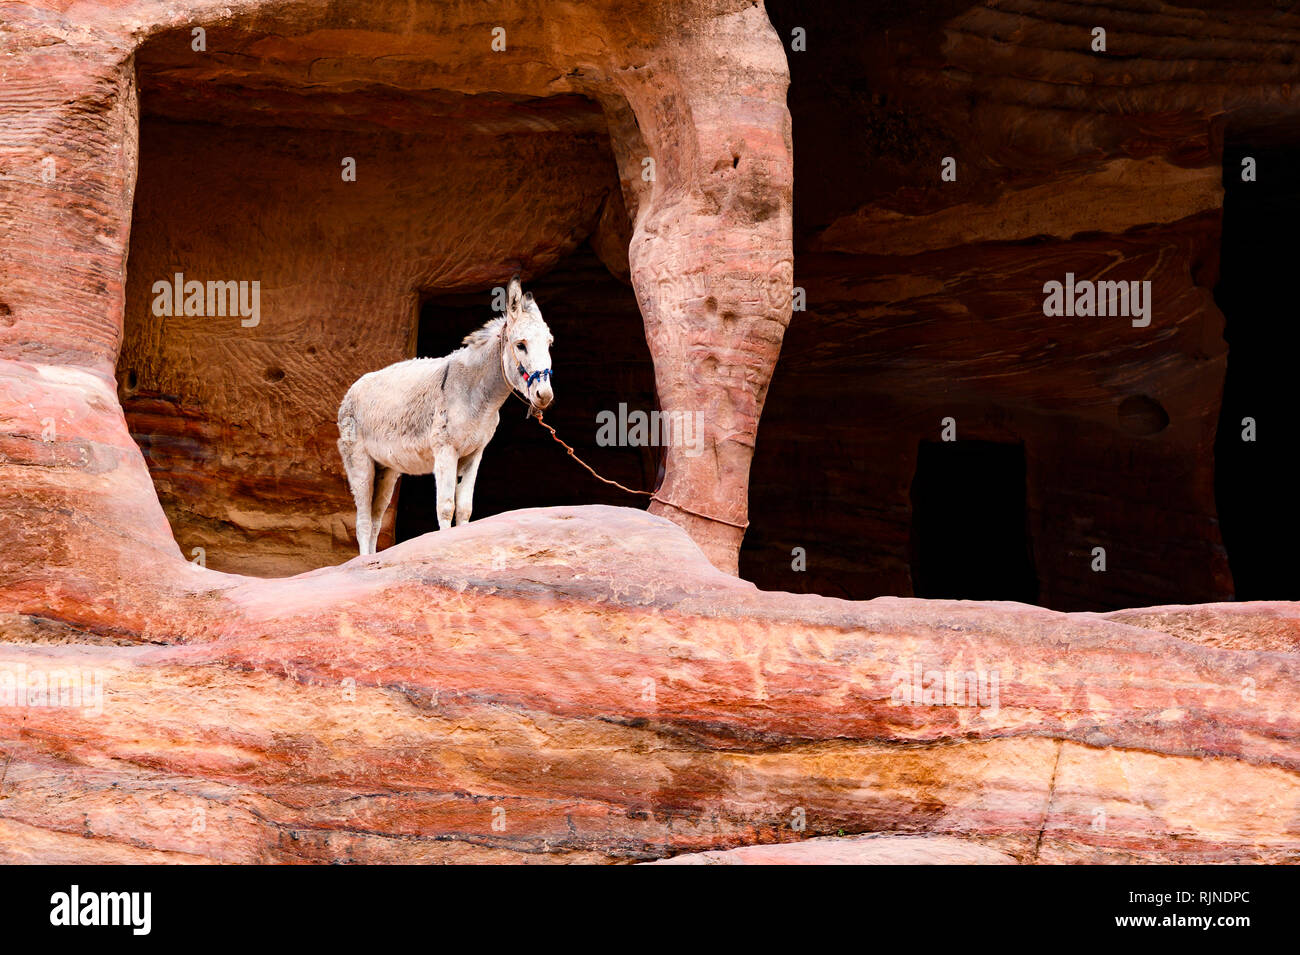 A donkeys inside caves dug into a rock formation in Petra. - Stock Image